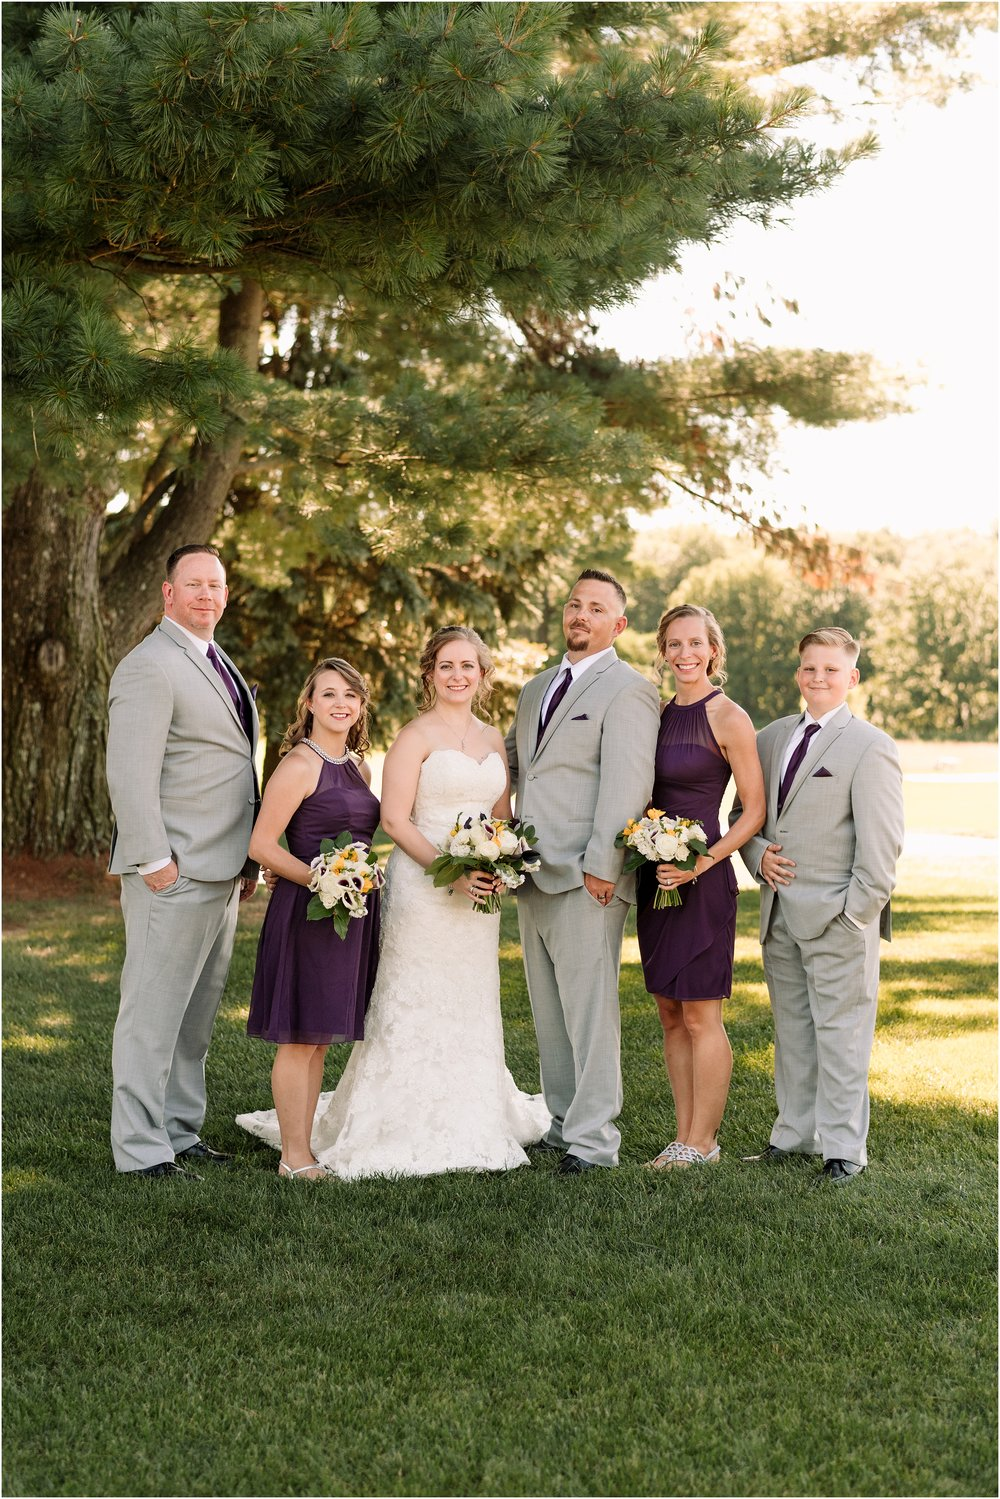 hannah leigh photography Piney Branch Golf Club Wedding Upperco MD_0452.jpg